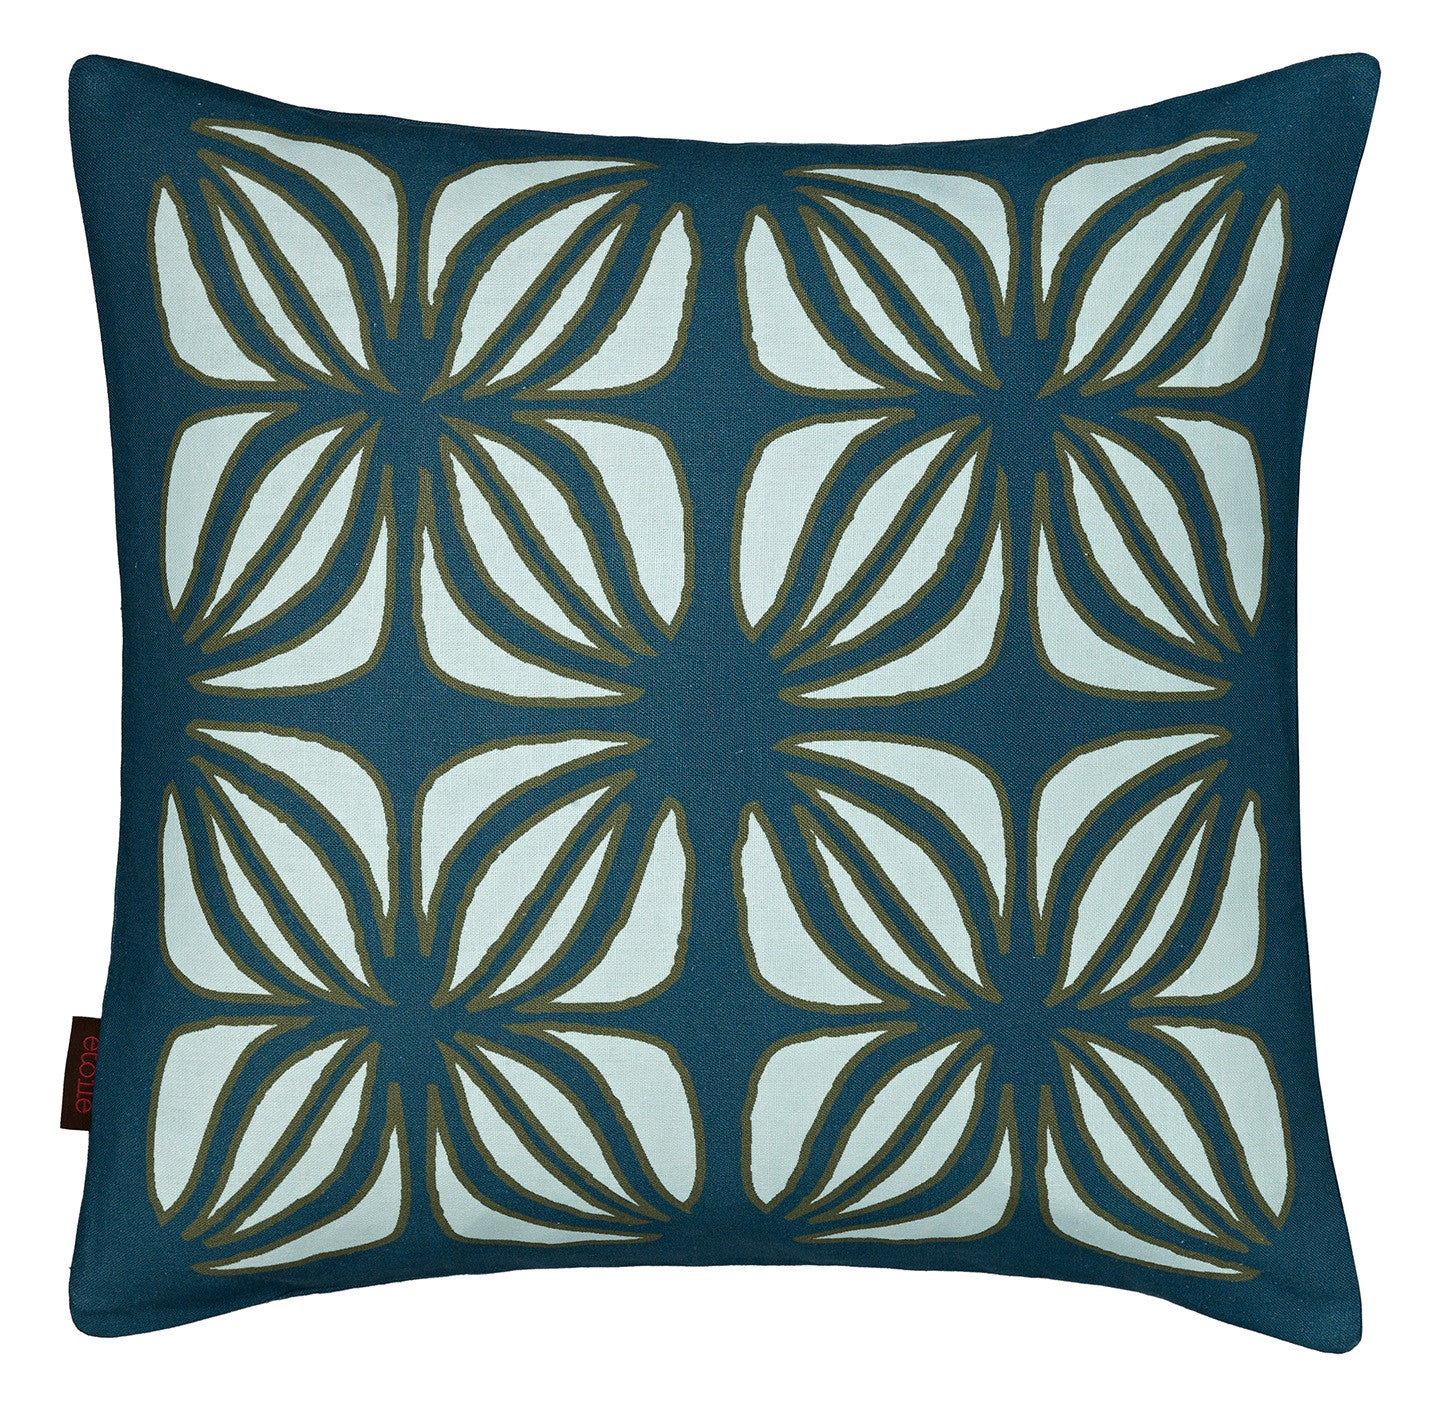 Nina Graphic Pattern Linen Cotton Pillow in Dark Petrol Blue